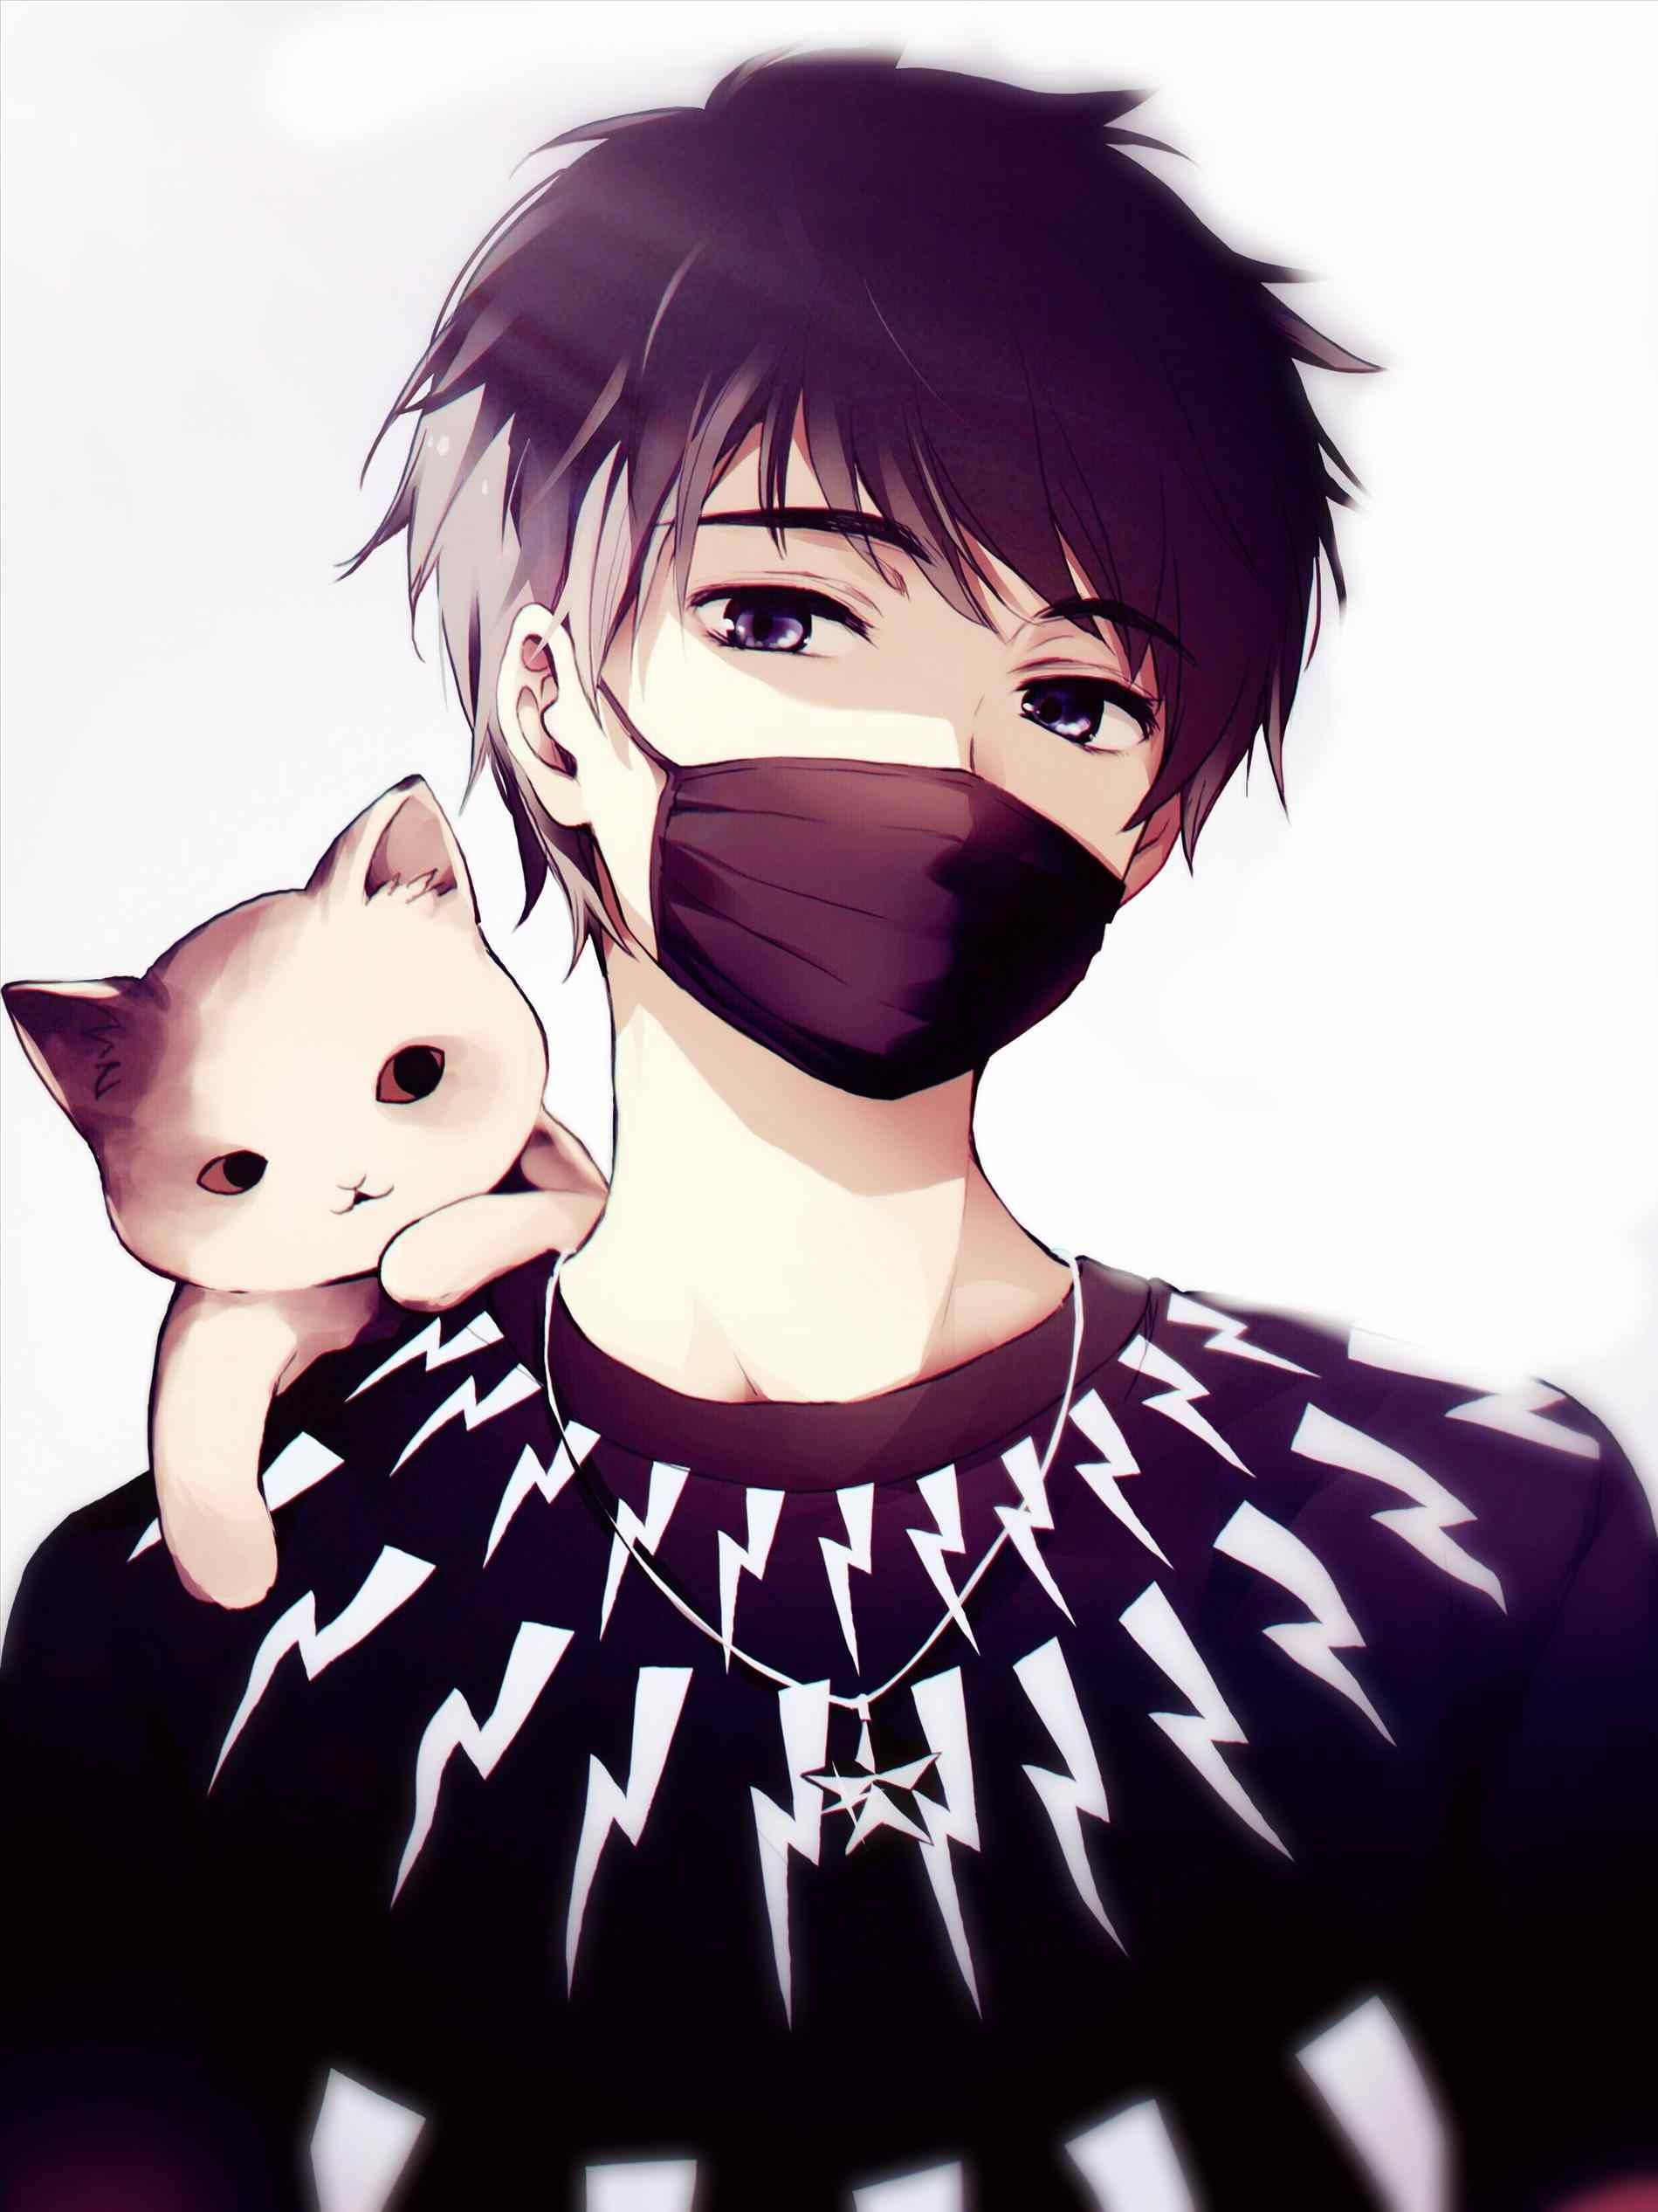 Manga Anime Boy Colored Favourites By Kirazoldyck On Deviantart Chesire Cat Marimokun Chesire Manga Anime Boy Colored Cat By Marimokun On Deviantart Jpg Jpg S Caras Bonitos Anime Anime Neko